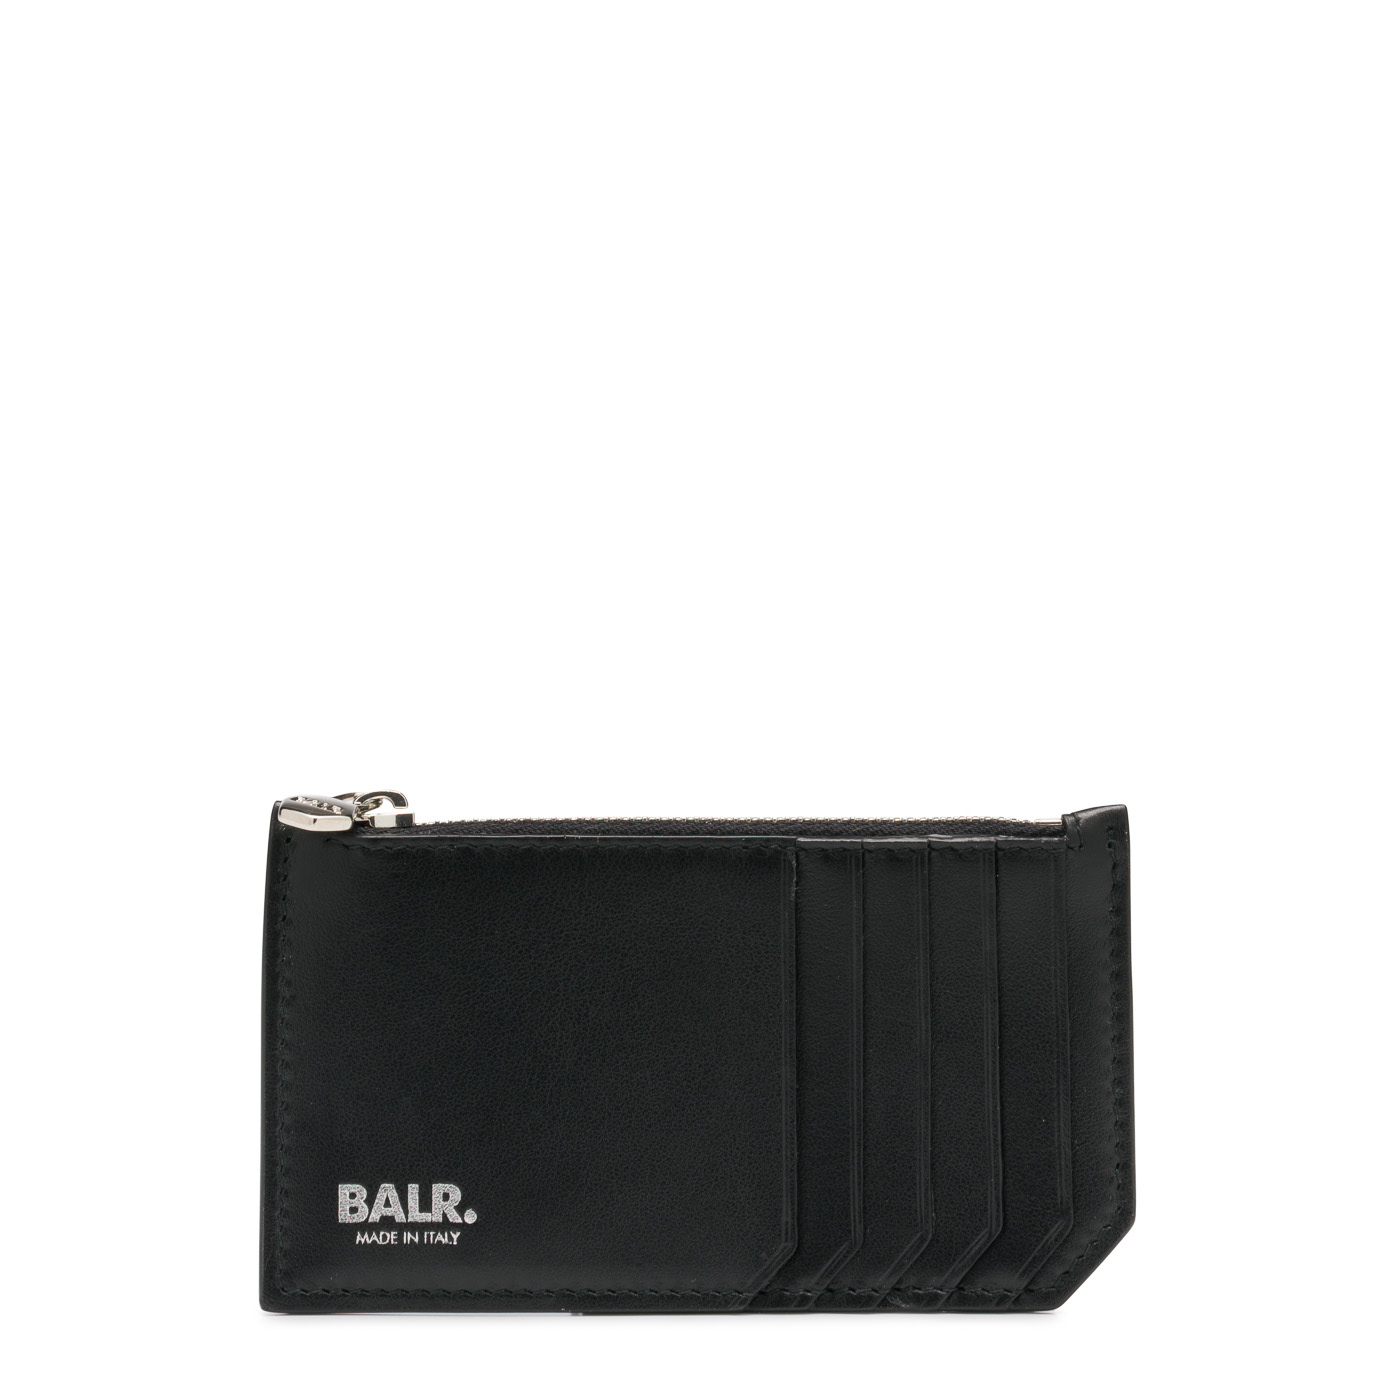 Bilde av BALR. Black Leather Zipped Wallet 8719777007939